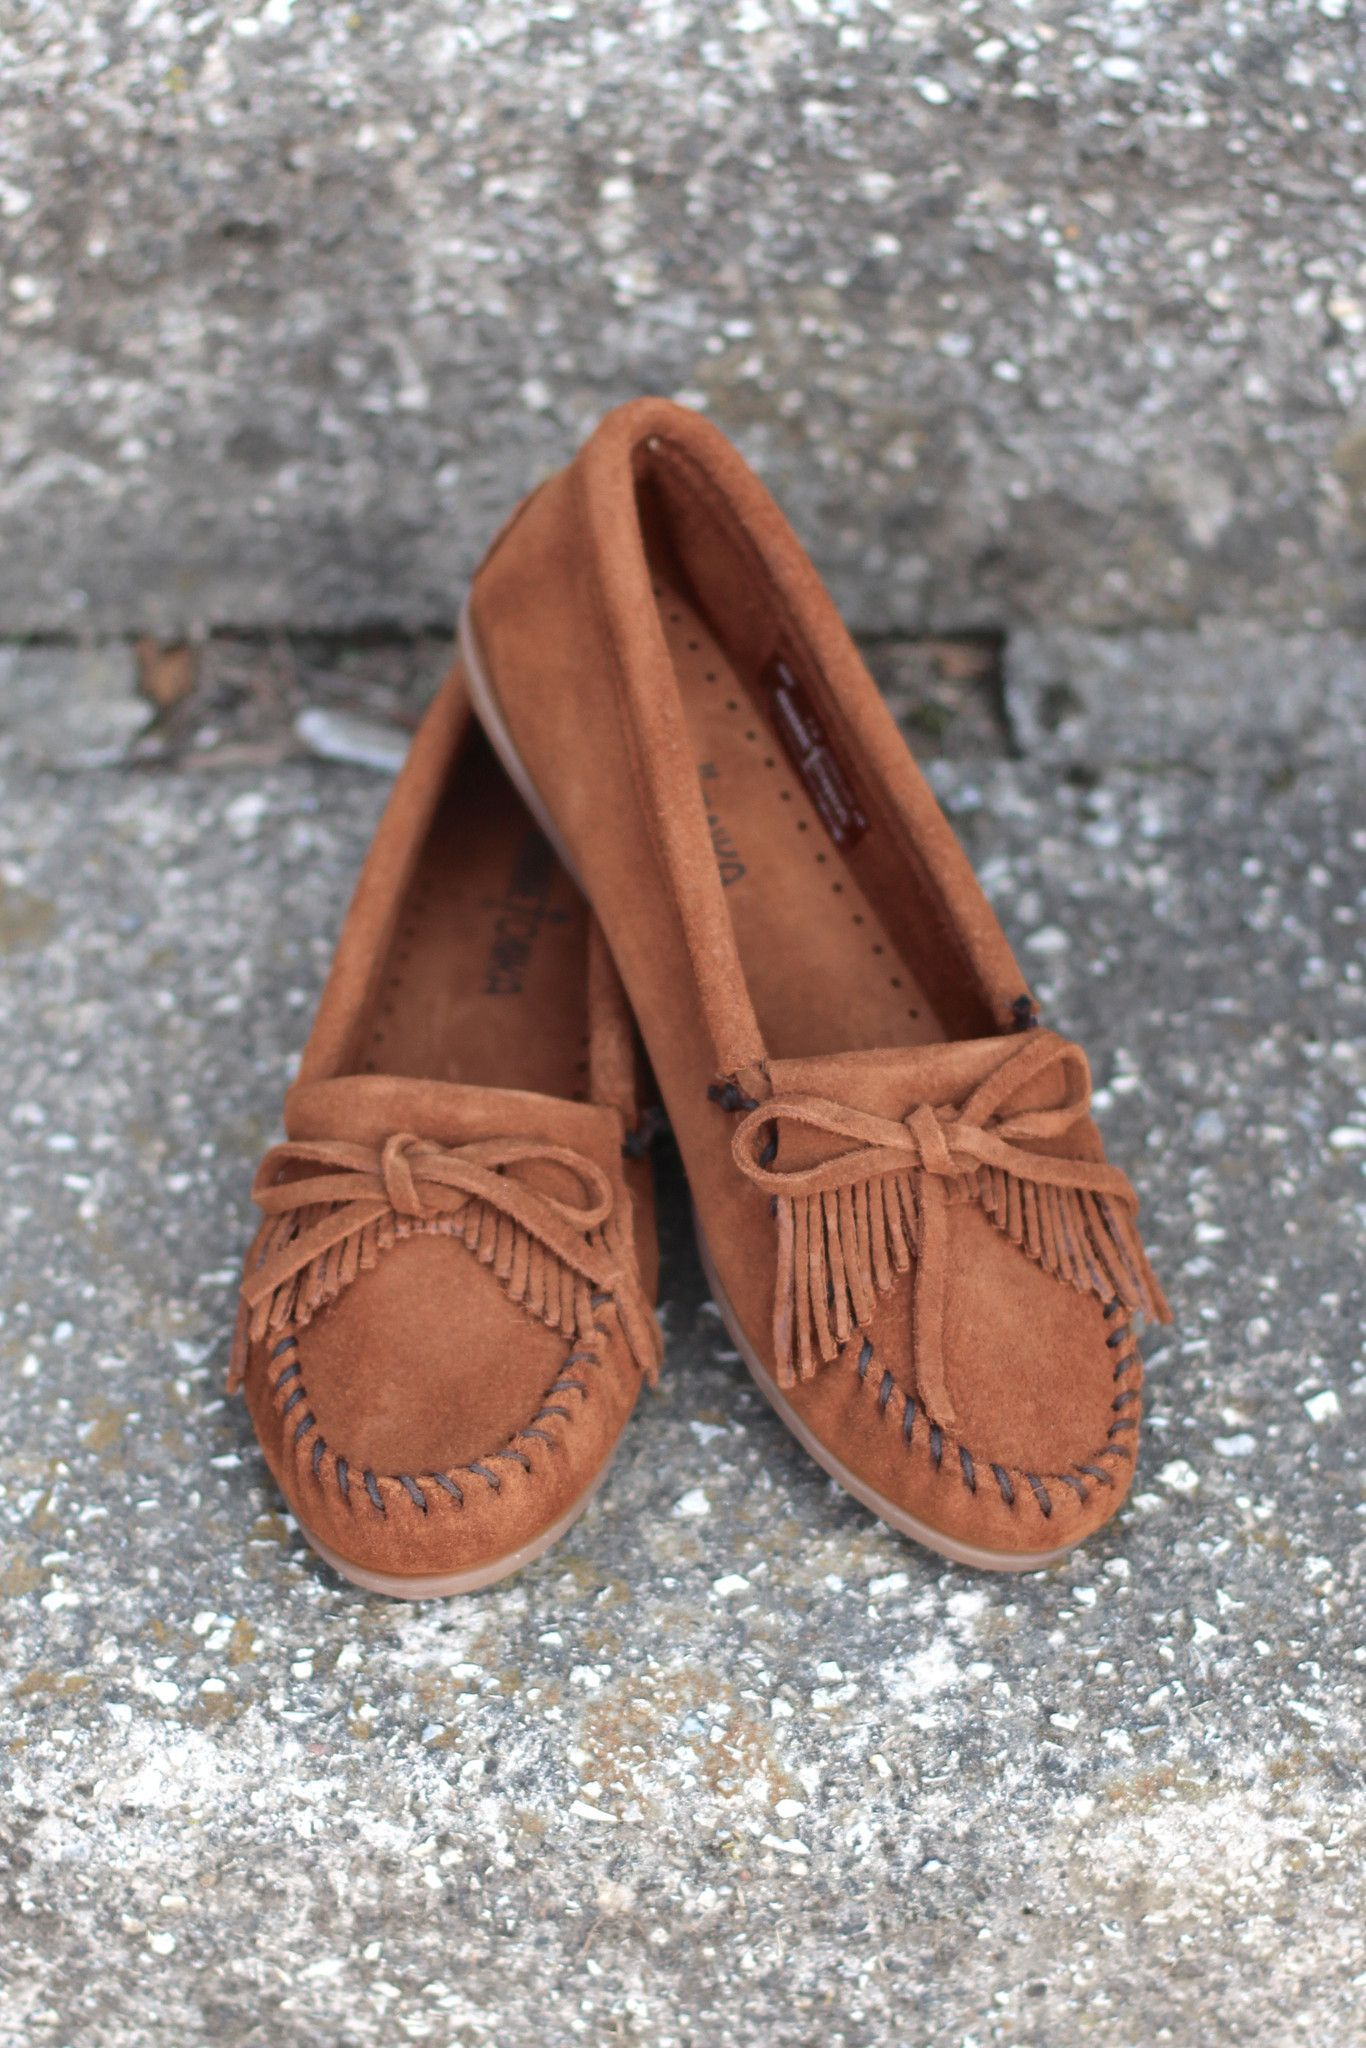 540cac17c05 Minnetonka  Kilty Moccasin  Brown  - The Fair Lady Boutique - 1 ...